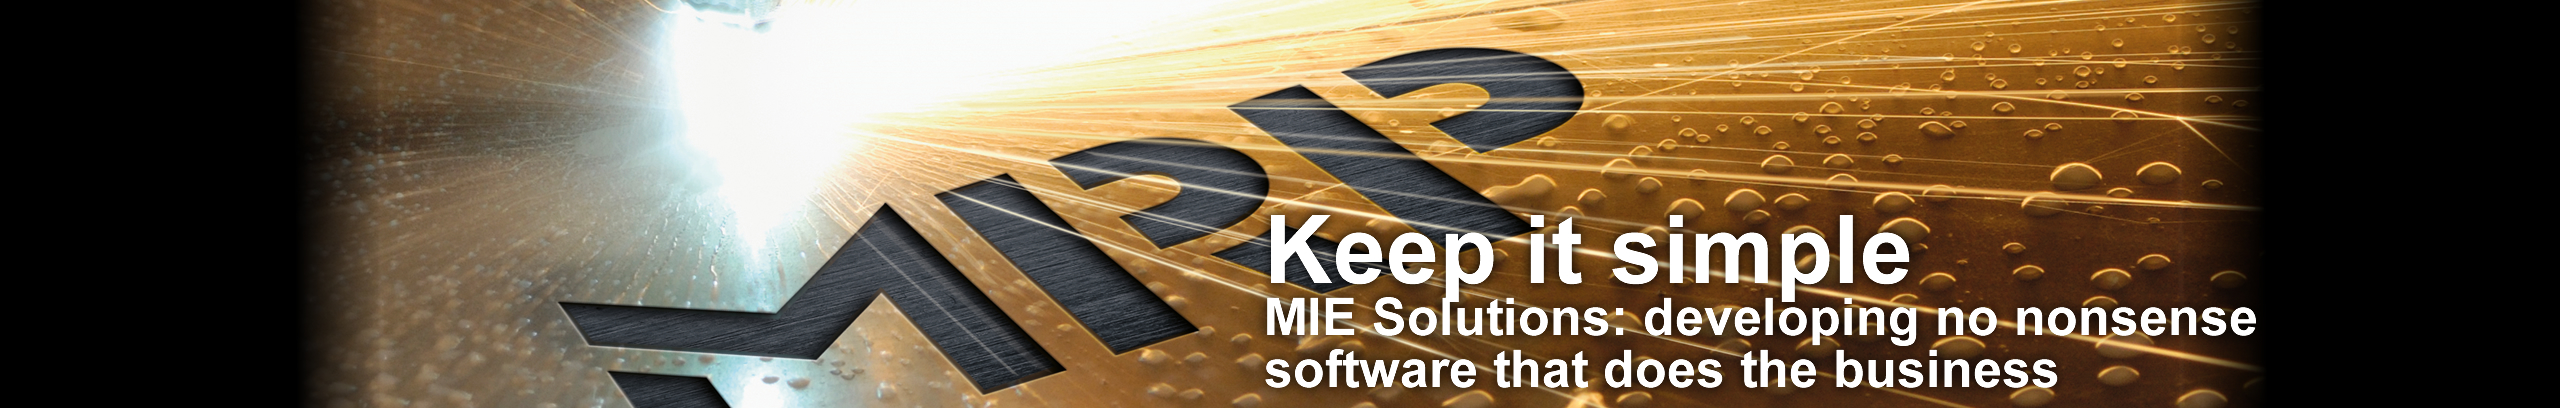 mie_solutions_mrp-post